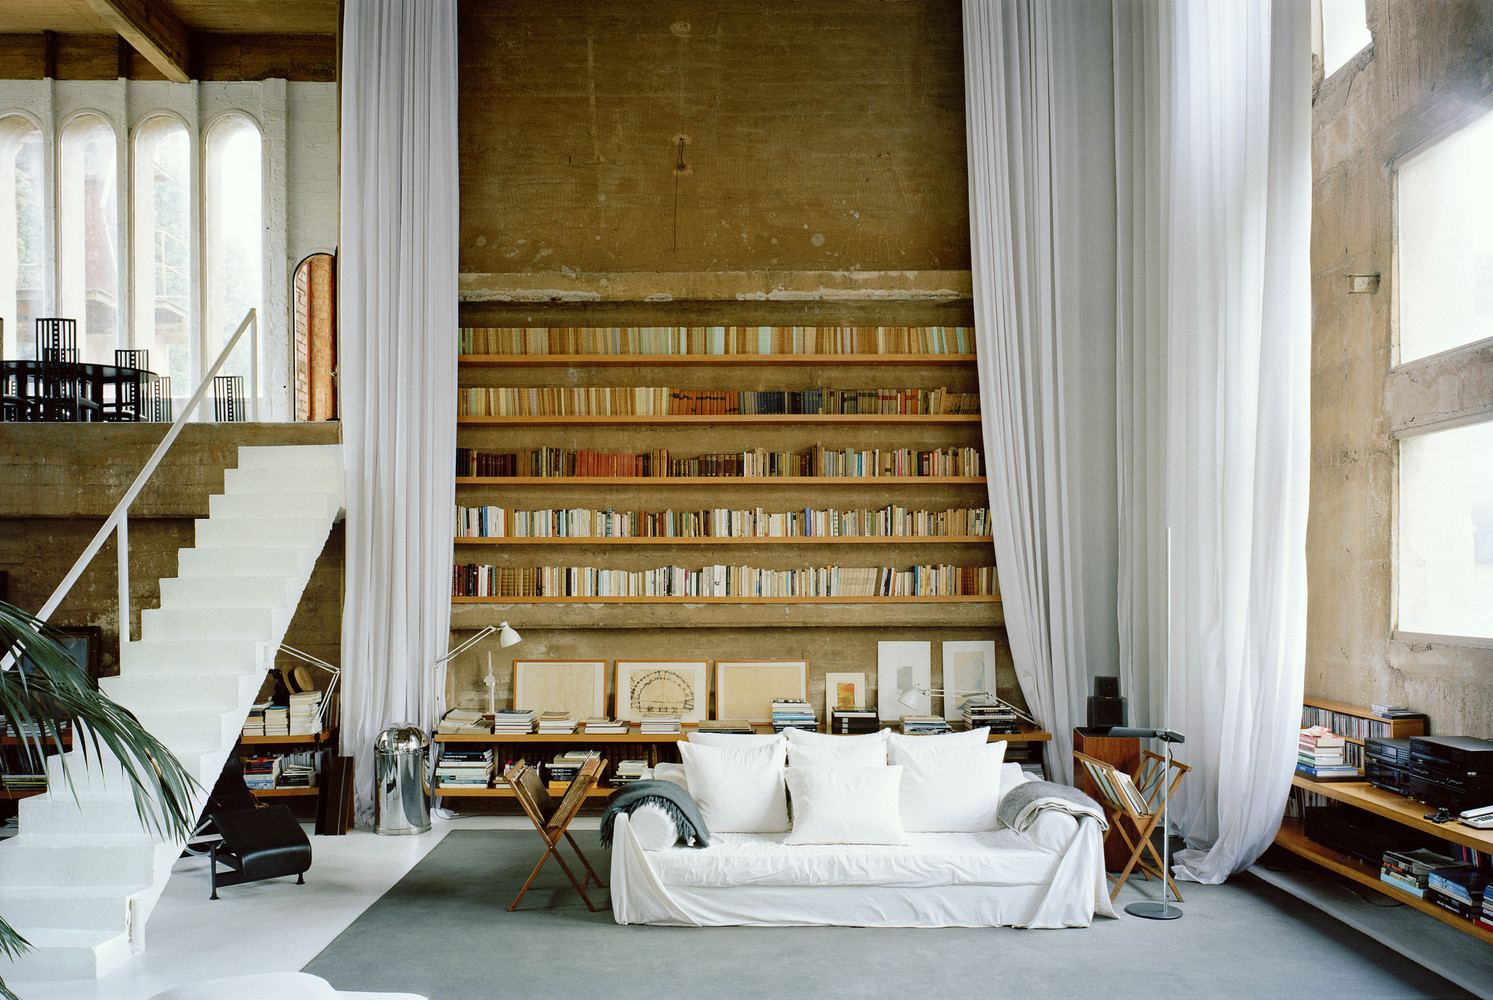 'La Fabrica' residence and office, by Ricardo Bofill Taller de Arquitectura, completed 1975